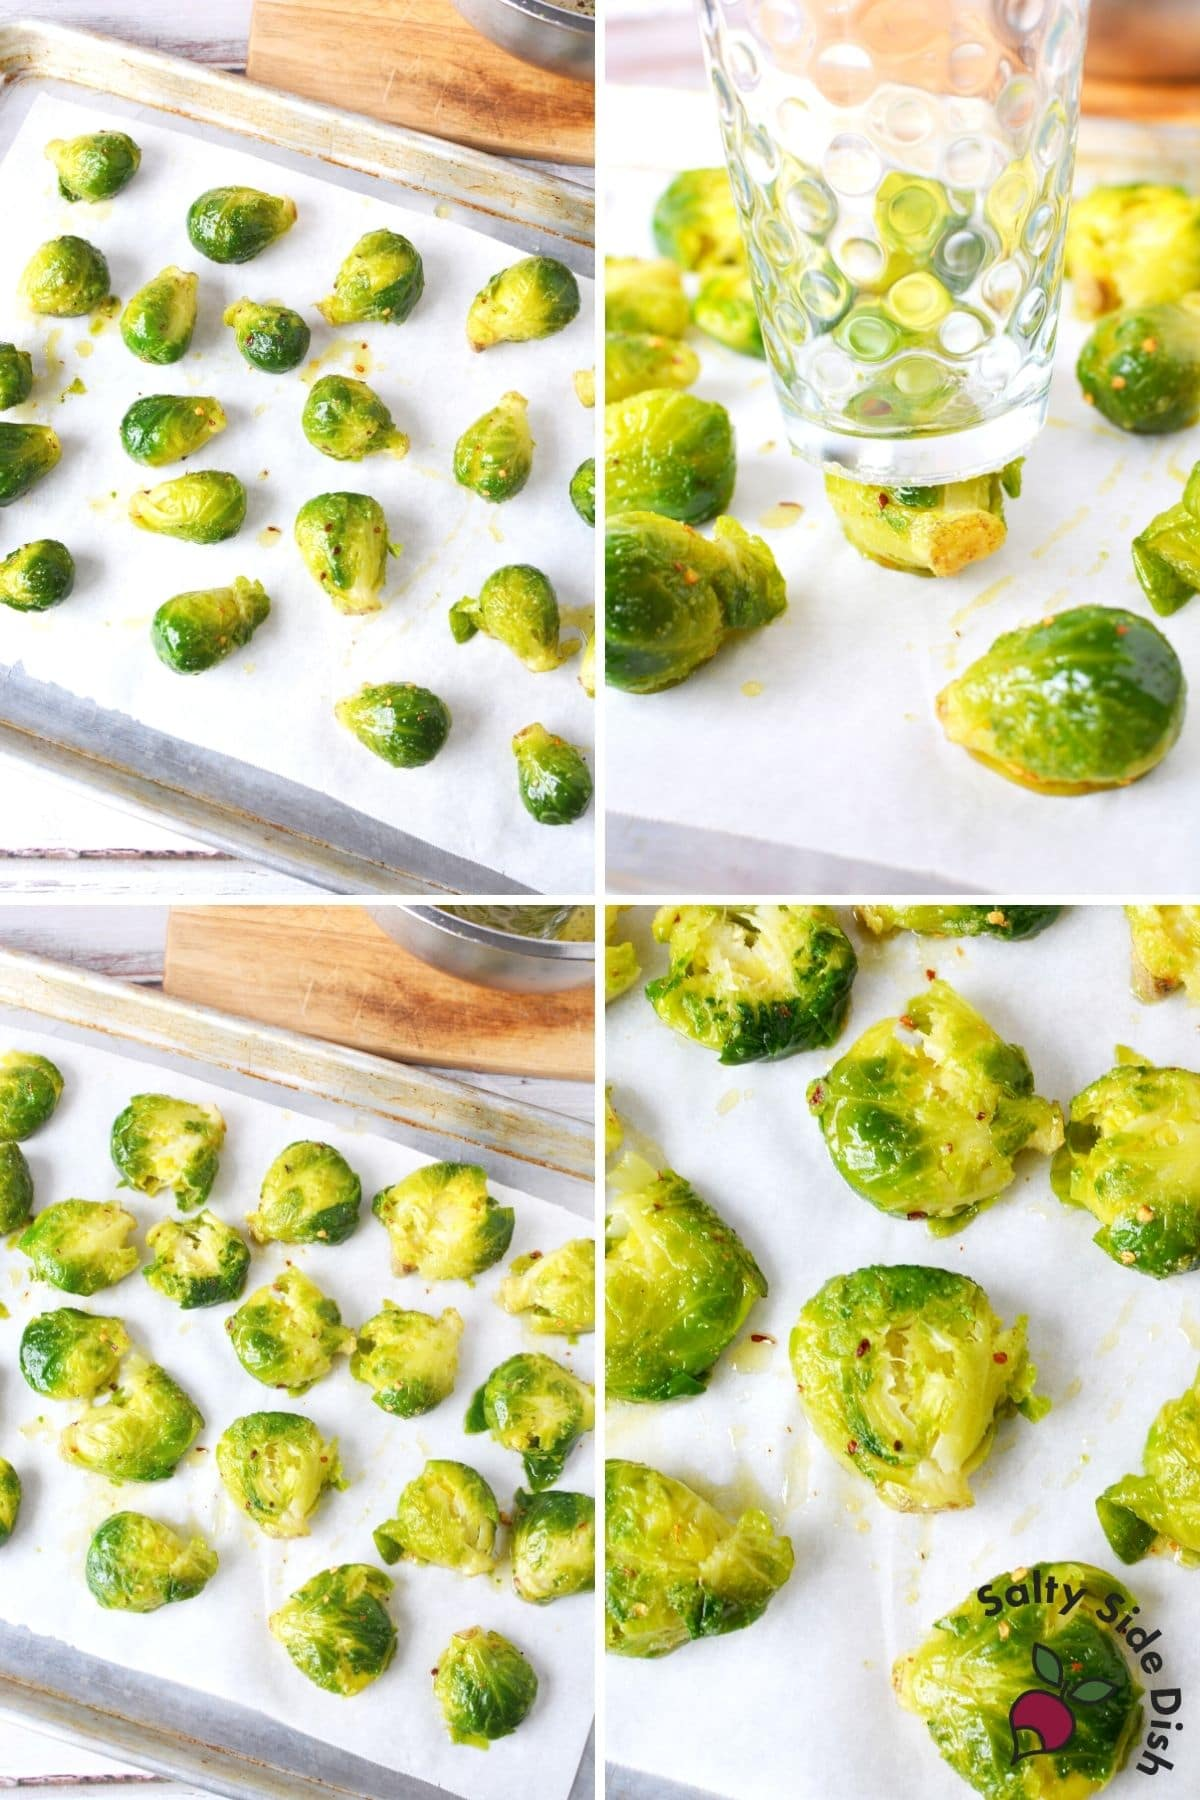 smashing two brussels sprouts with a glass